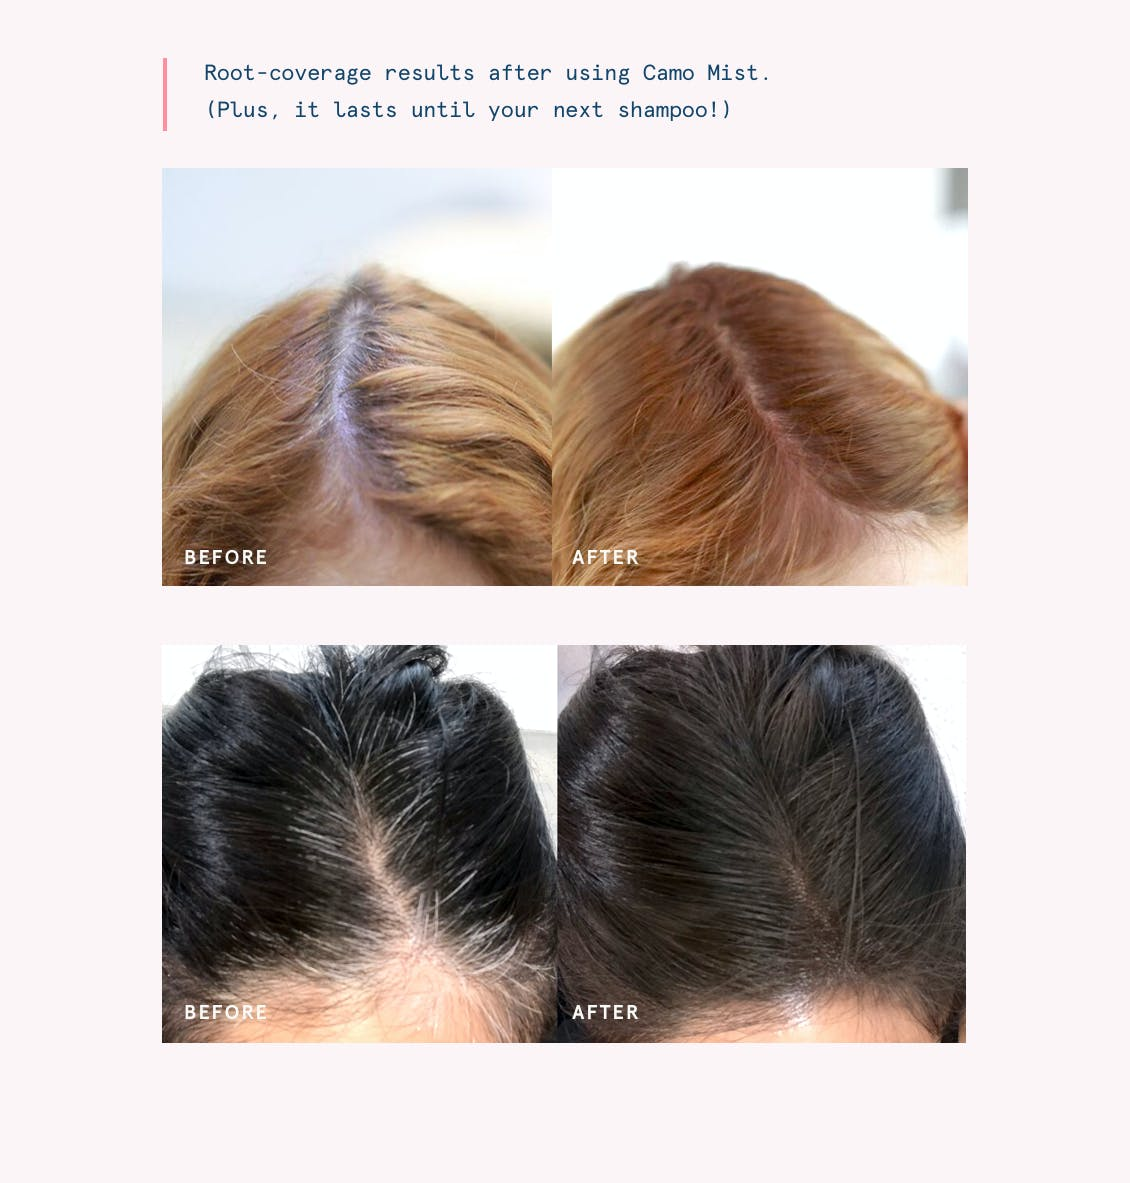 Image of two before and after examples of eSalon clients who have used Camo Mist to instantly cover their grays and comes in 8 shades